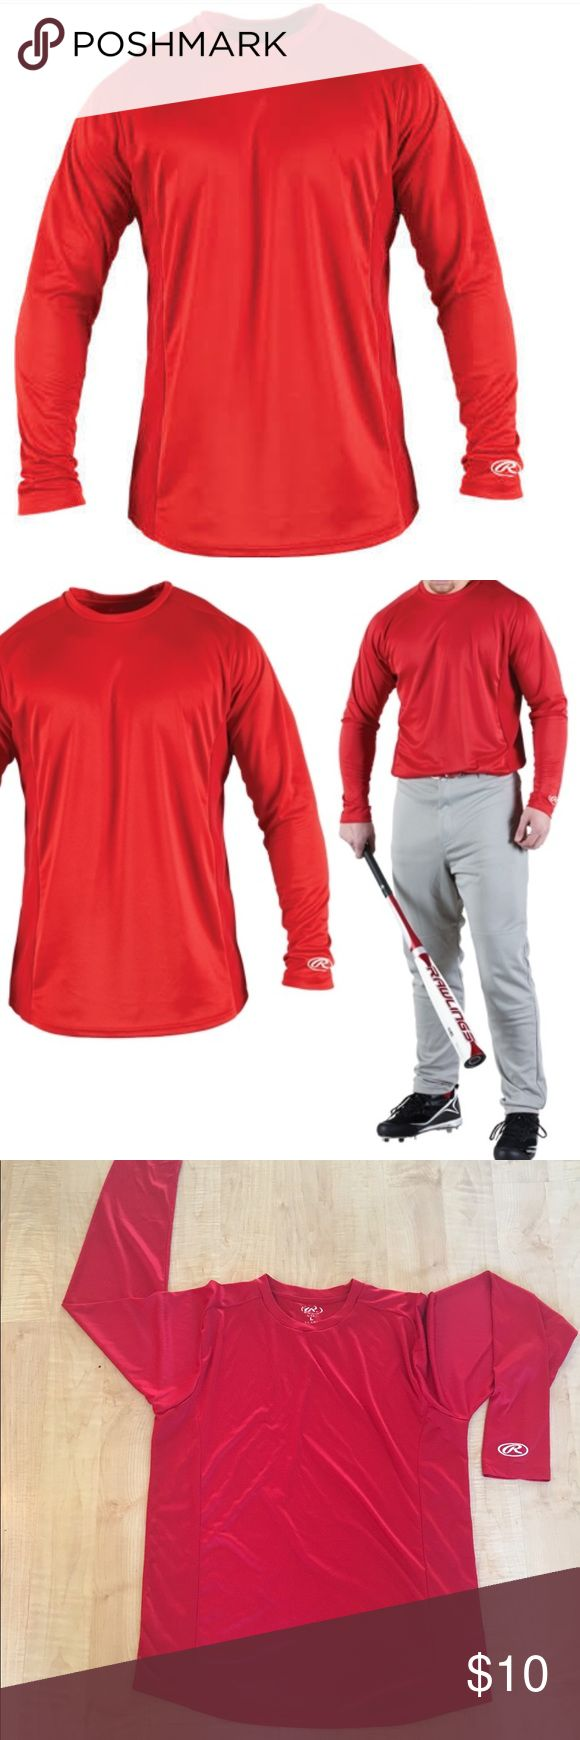 Rawlings Men's Long Sleeve Shirt Rawlings Men's Long Sleeve Performance Custom Red Baseball Shirt PRO DRI size L , has been washed a few times. Stock photos are just an example of the fit. Rawlings Shirts Tees - Long Sleeve